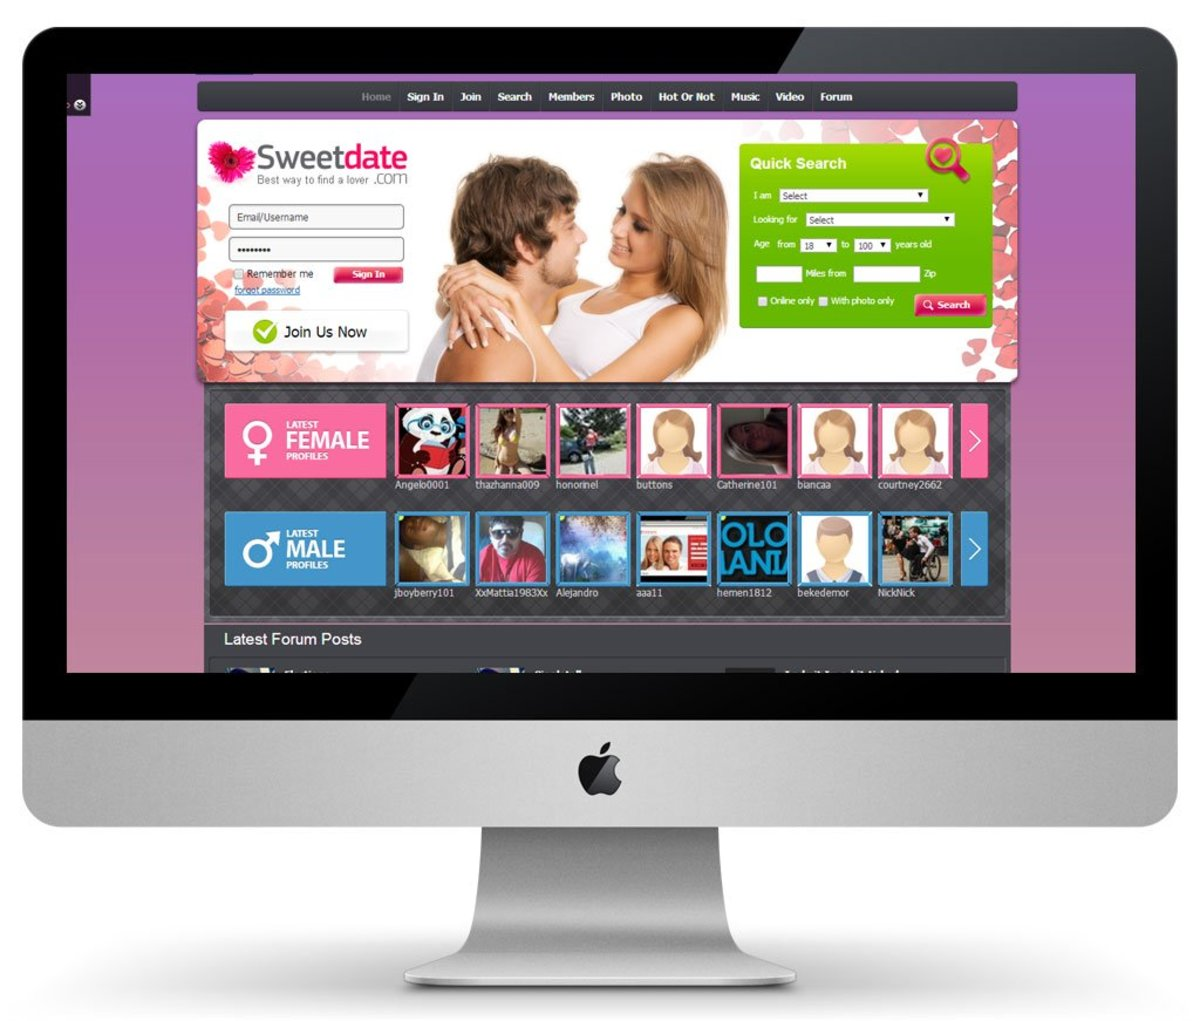 pos dating website